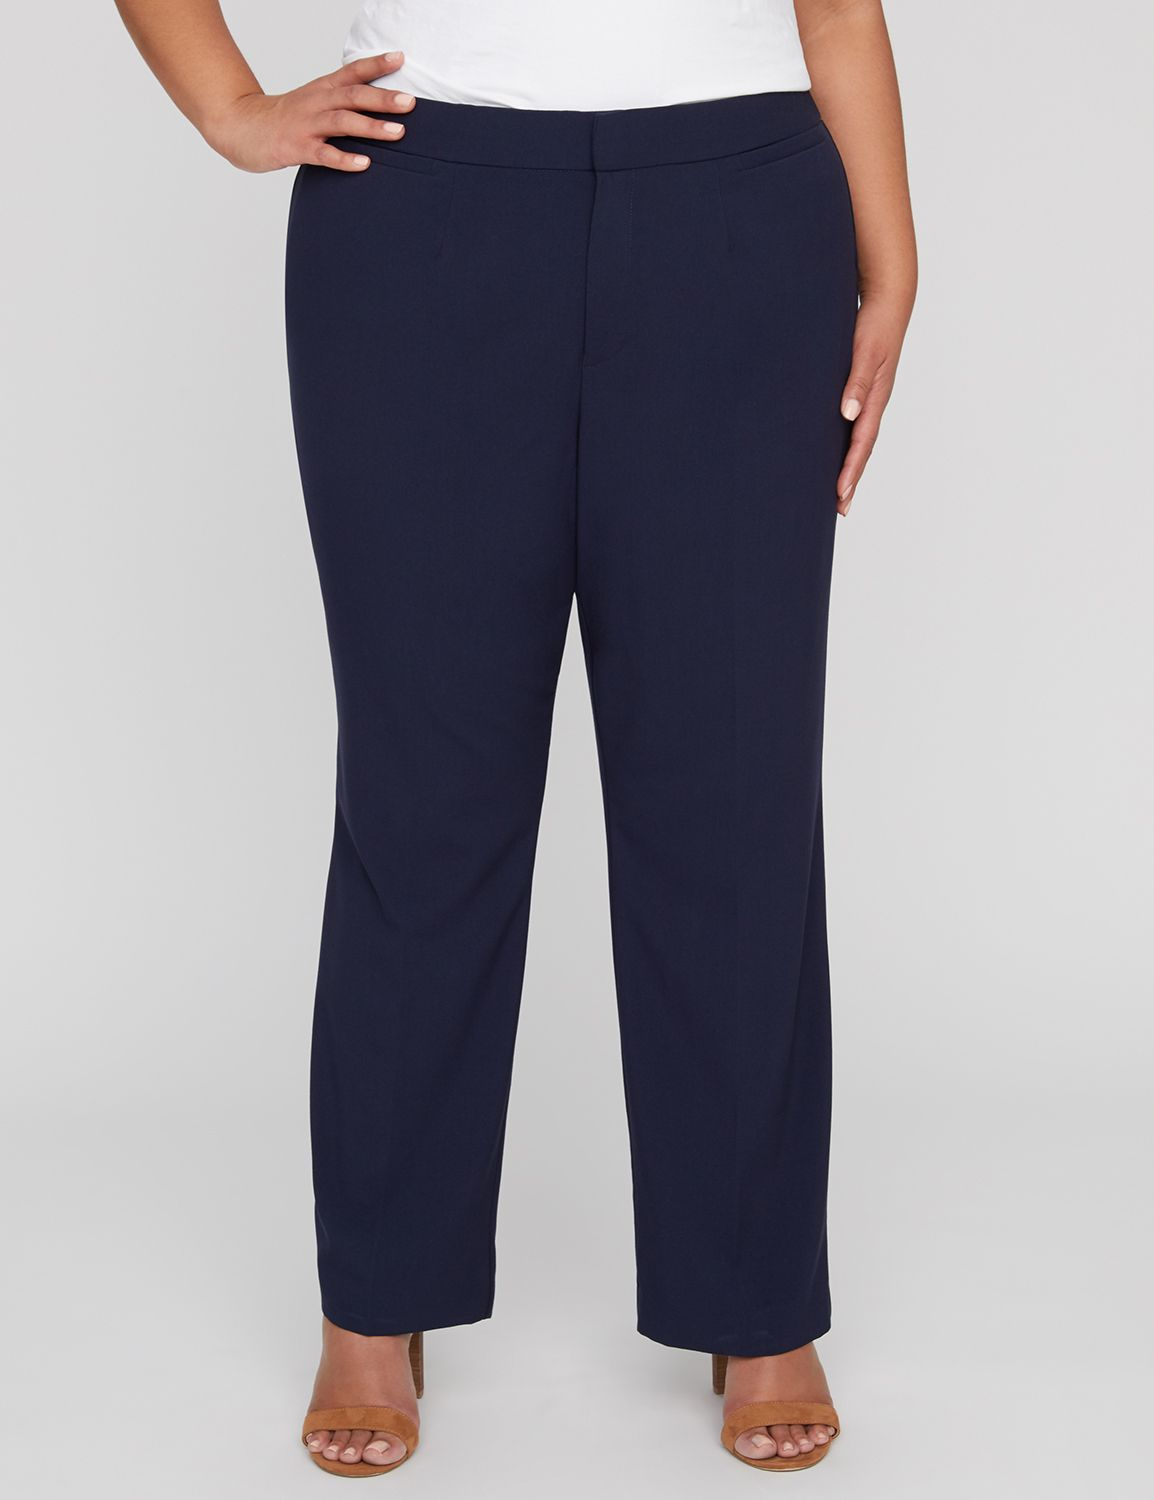 Right Fit Pant (Curvy) Right Fit Pant (Curvy) MP-300043653